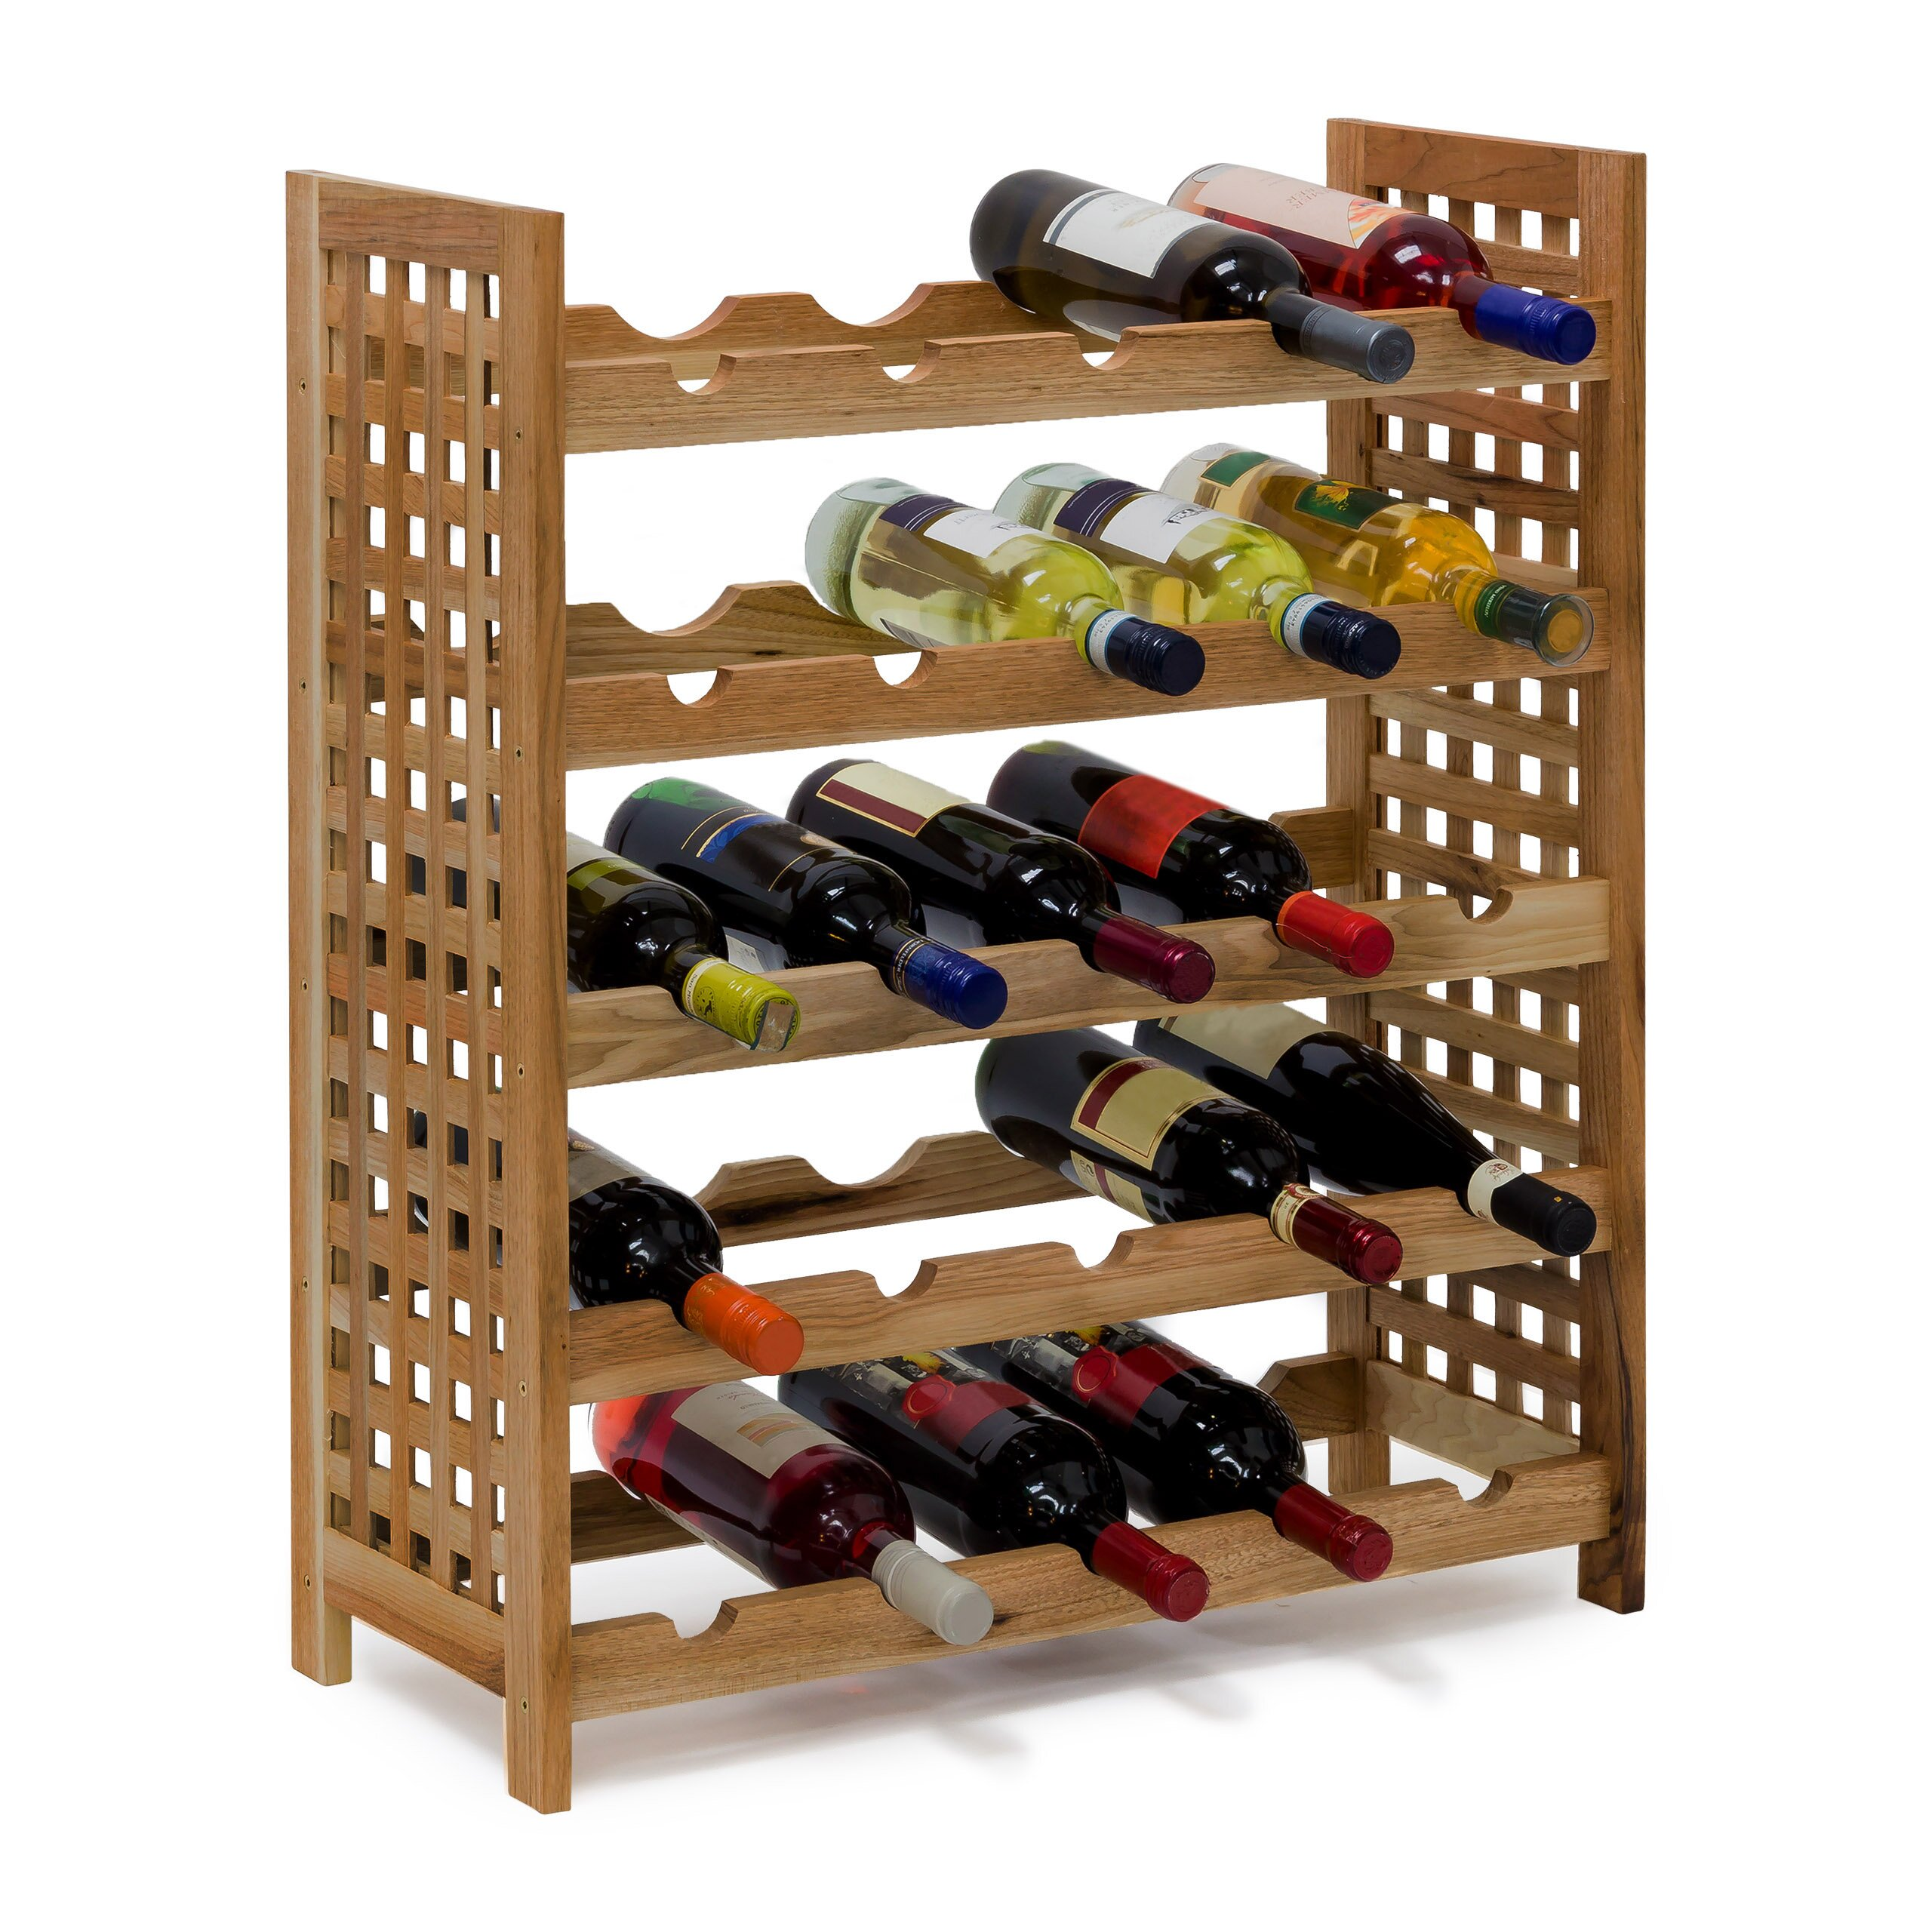 Castleton home 25 bottle floor wine rack reviews for Floor wine rack